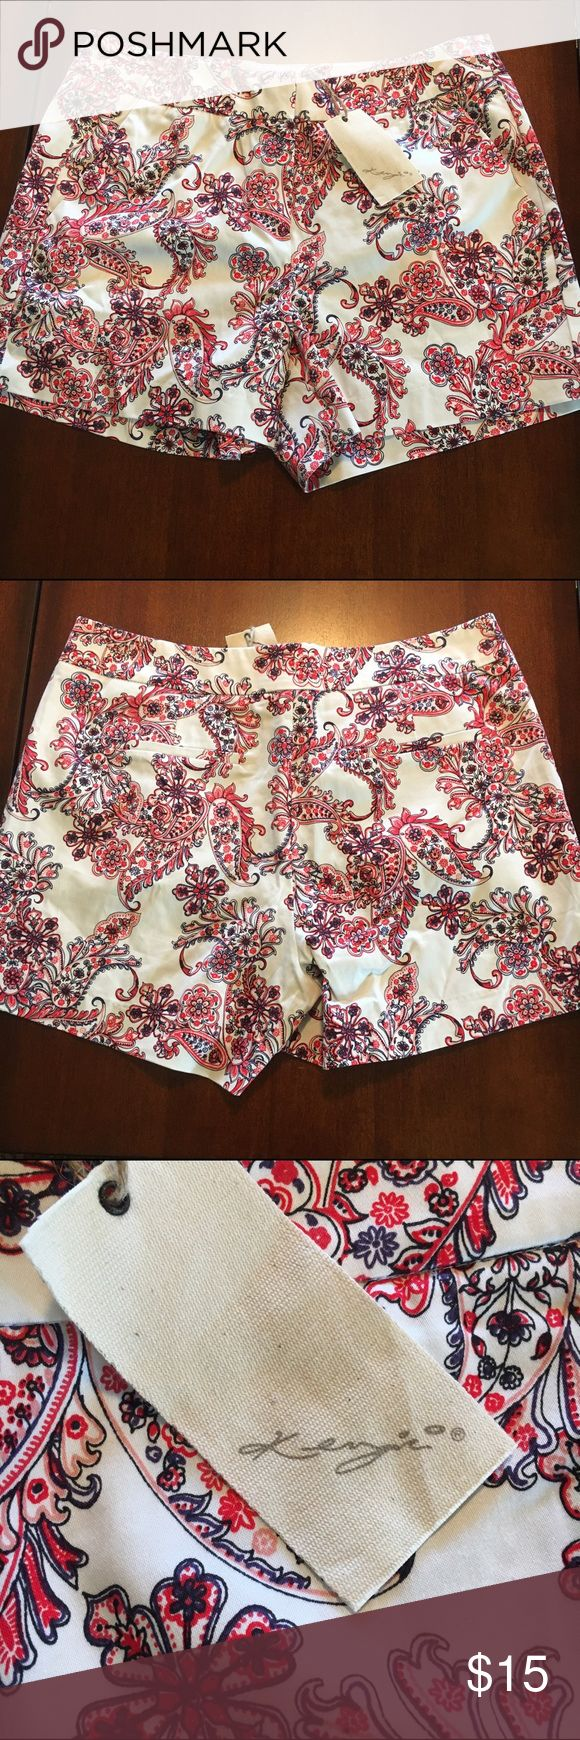 """NWT Super Cute Shorts Kenzie cotton/Elastane shorts. Off white with  red and navy paisley pattern. Inseam 4"""". Can be cuffed. Absolutely perfect! kenzie Shorts"""